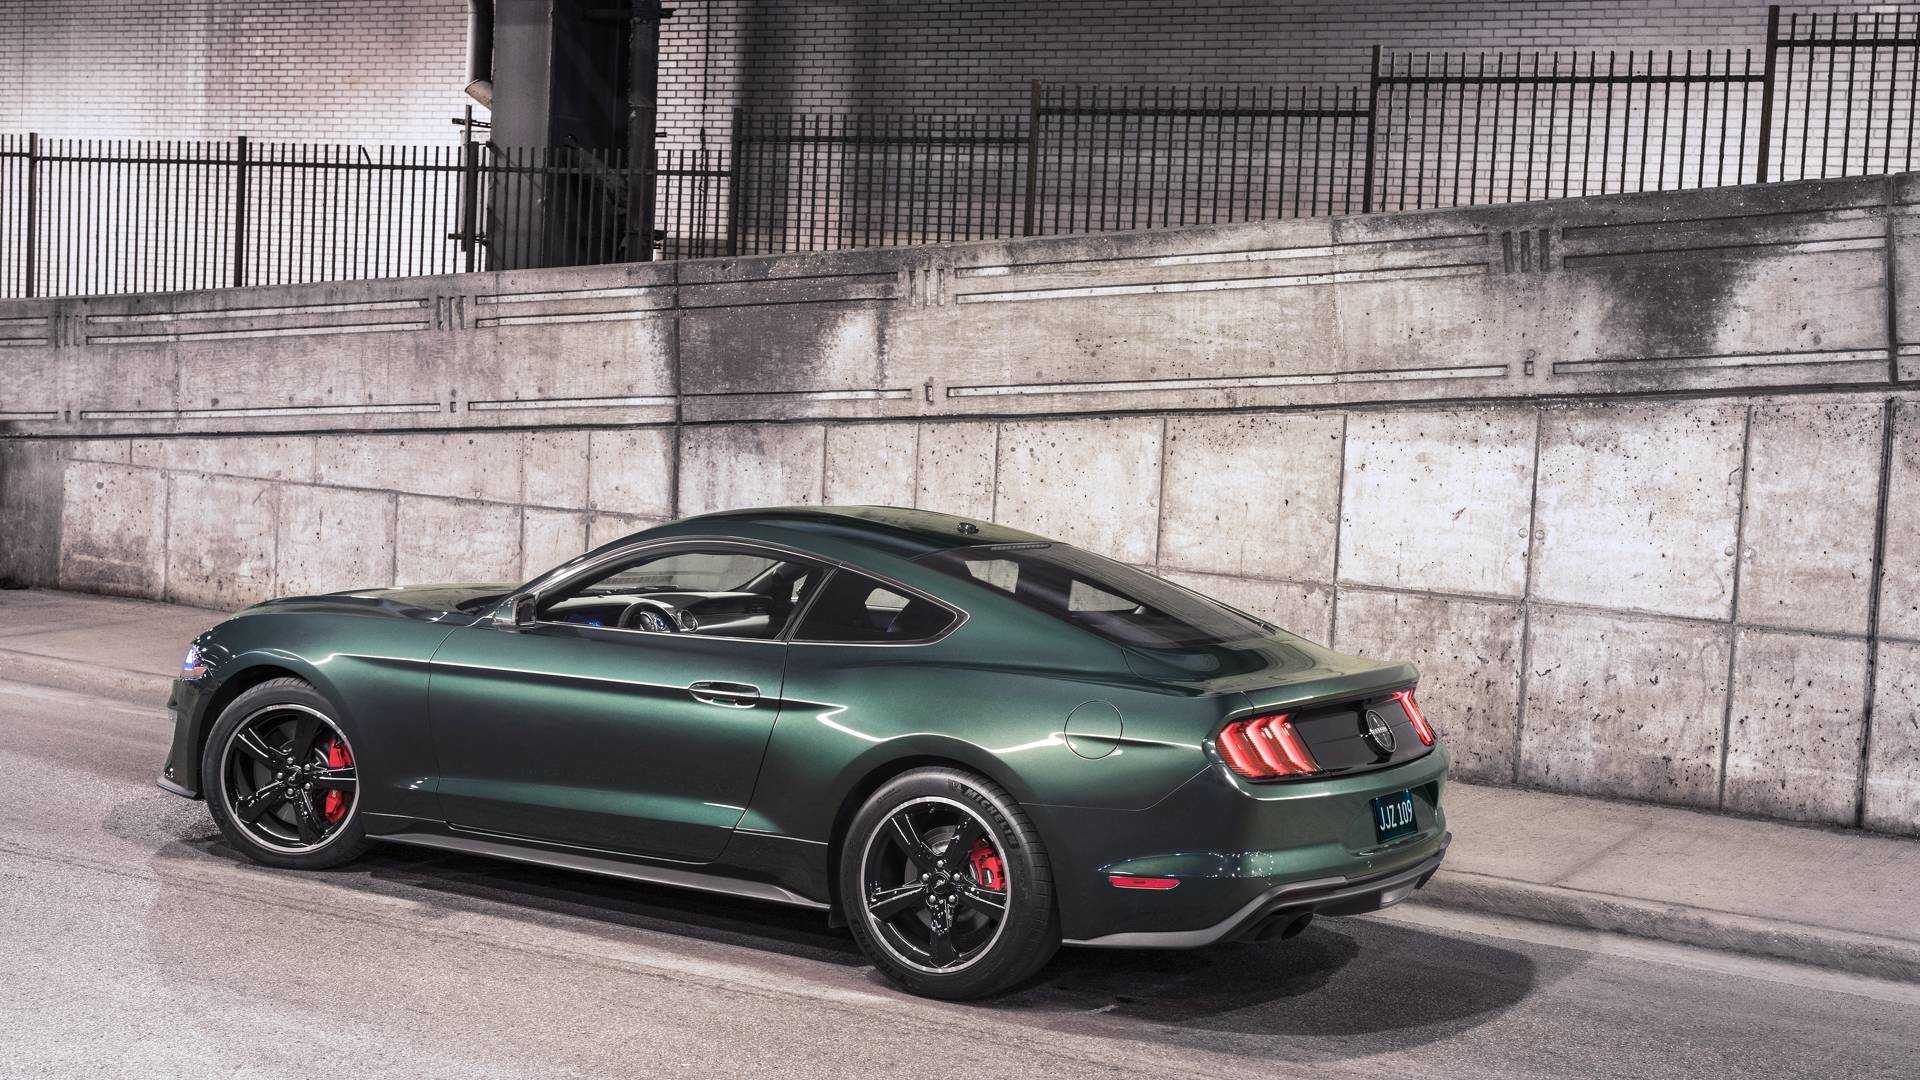 2019 Ford Mustang Sports Car The Bullitt Is Back >> 2020 Model Year Will Be The Last For The Bullitt Mustang Autoevolution